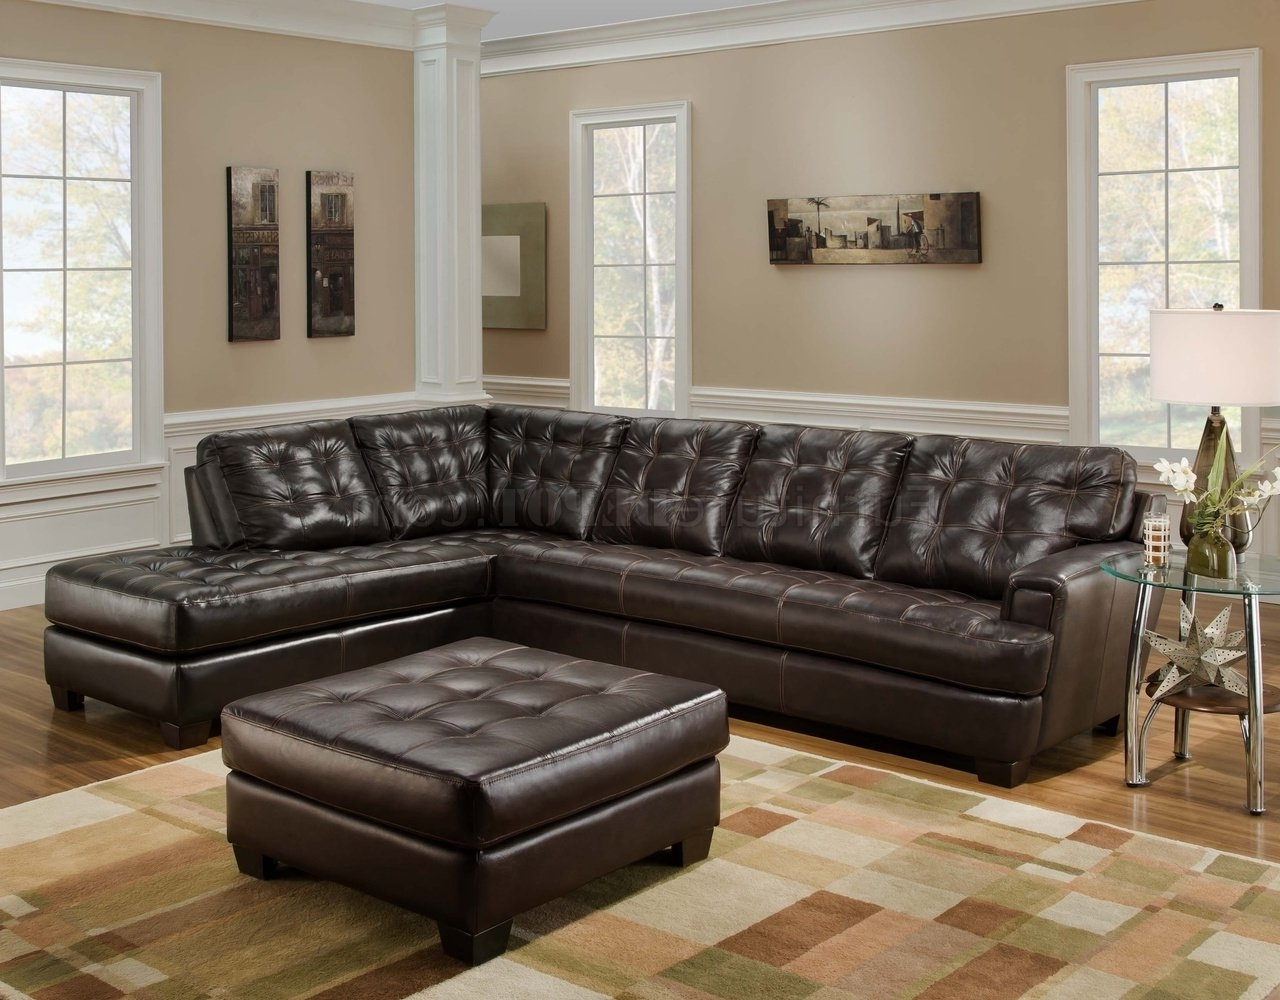 Surprising View Gallery Of Leather Sectionals With Ottoman Showing 20 Theyellowbook Wood Chair Design Ideas Theyellowbookinfo